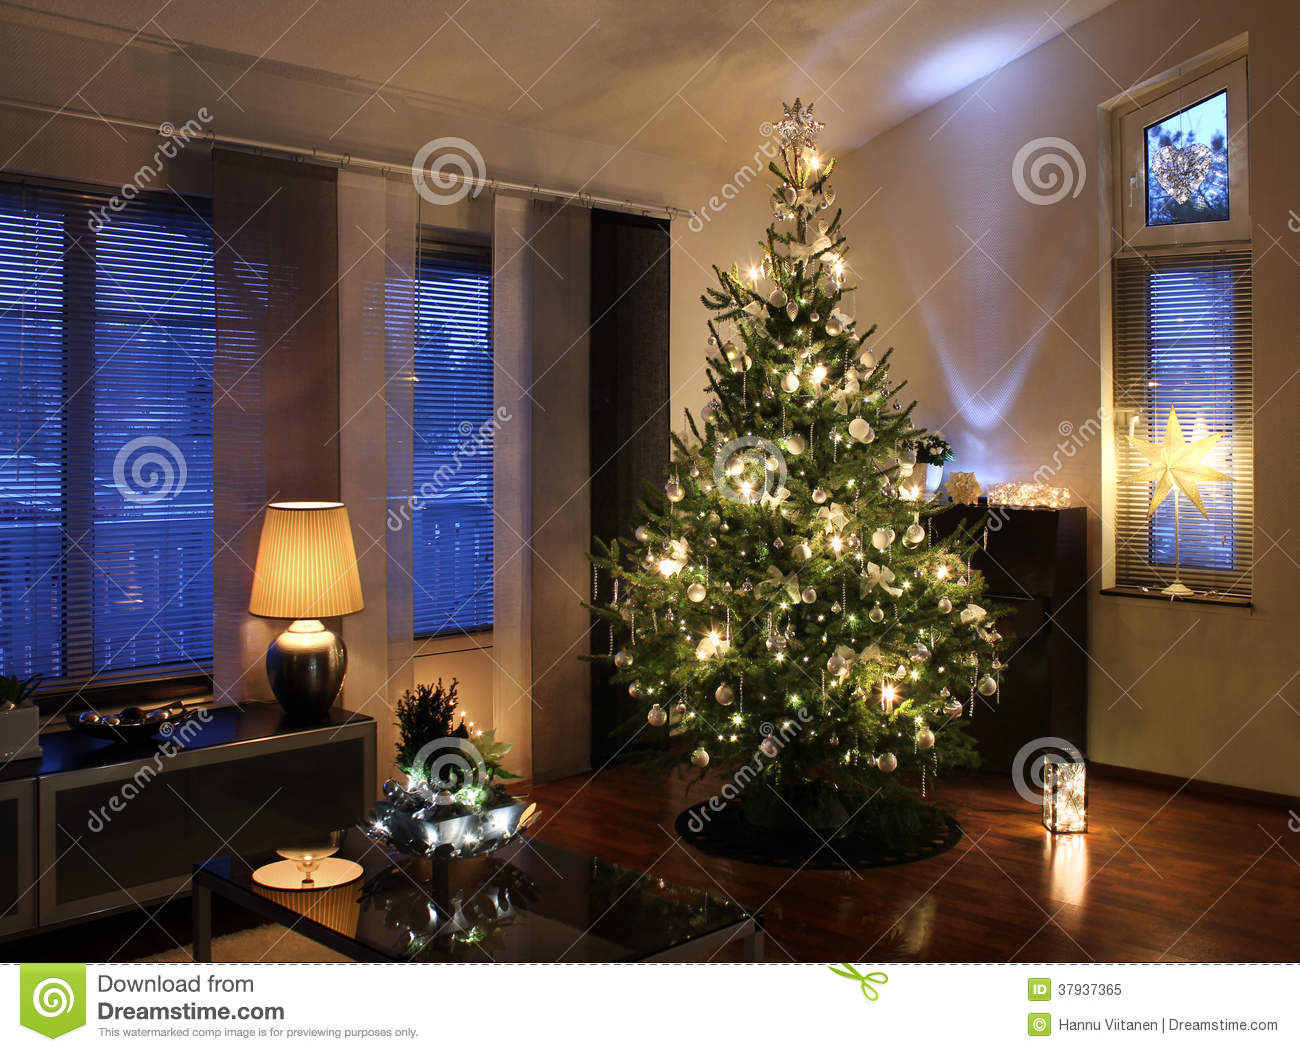 Christmas Tree In Modern Living Room Stock Image Image Of Season Decorated 37937365